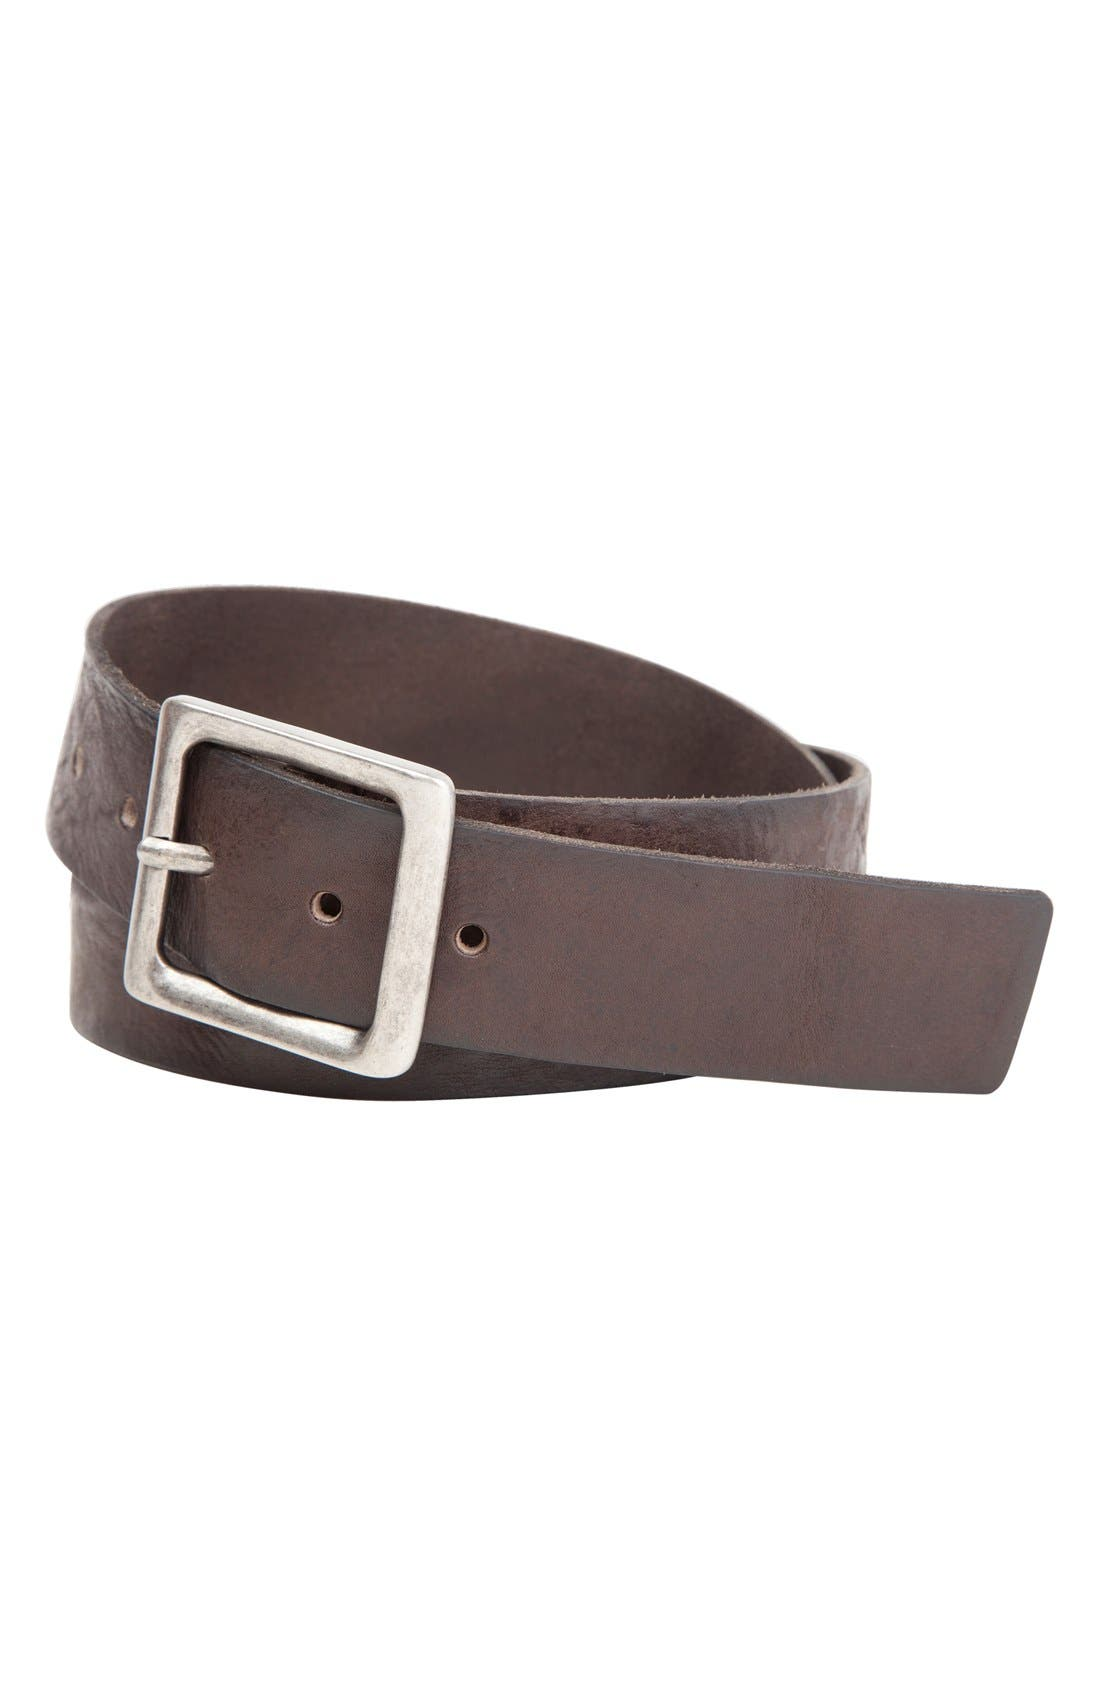 Alternate Image 1 Selected - Trafalgar 'Simsbury' Leather Belt